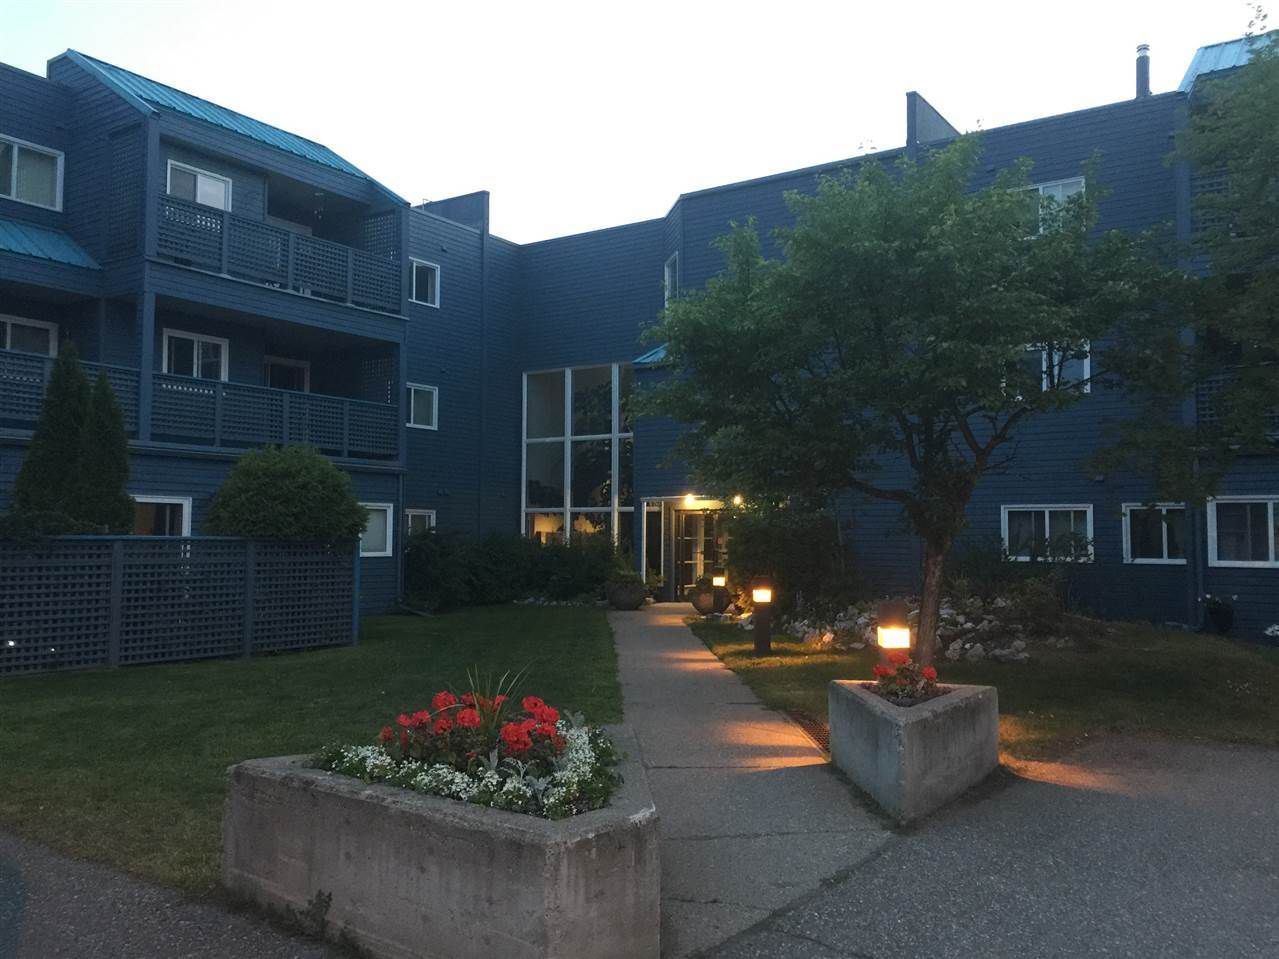 Main Photo: 220 3033 OSPIKA Boulevard in Prince George: Carter Light Condo for sale (PG City West (Zone 71))  : MLS®# R2345326